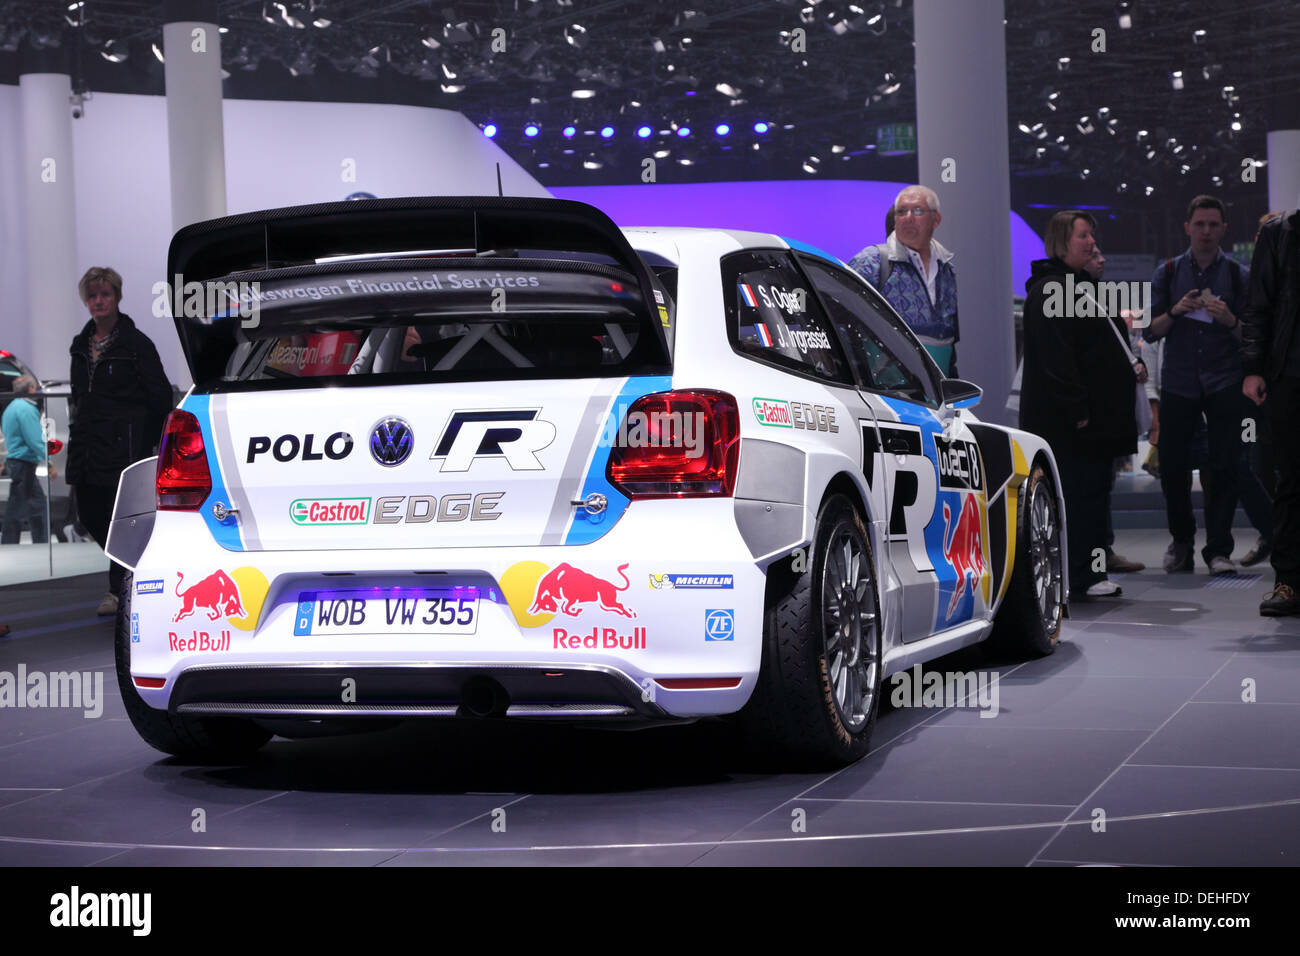 International Motor Show in Frankfurt, Germany. Volkswagen presenting the Polo WRC Rallye racing car at the 65th IAA - Stock Image